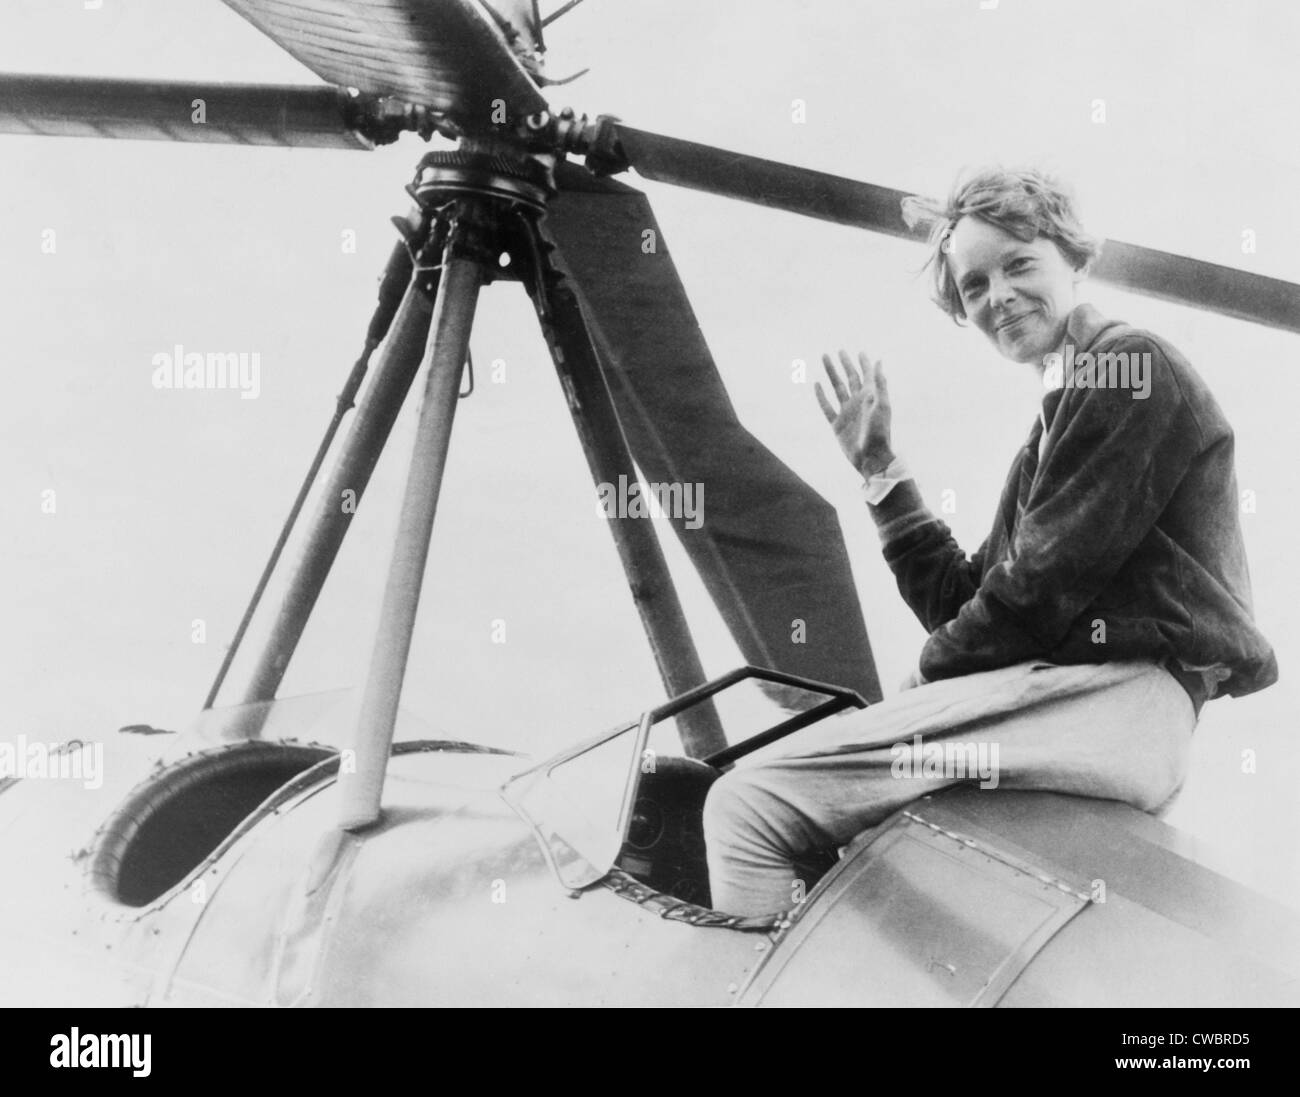 Amelia Earhart (1897-1937), waving, seated outside cockpit on top of an Autogiro, in Los Angeles, shortly after - Stock Image